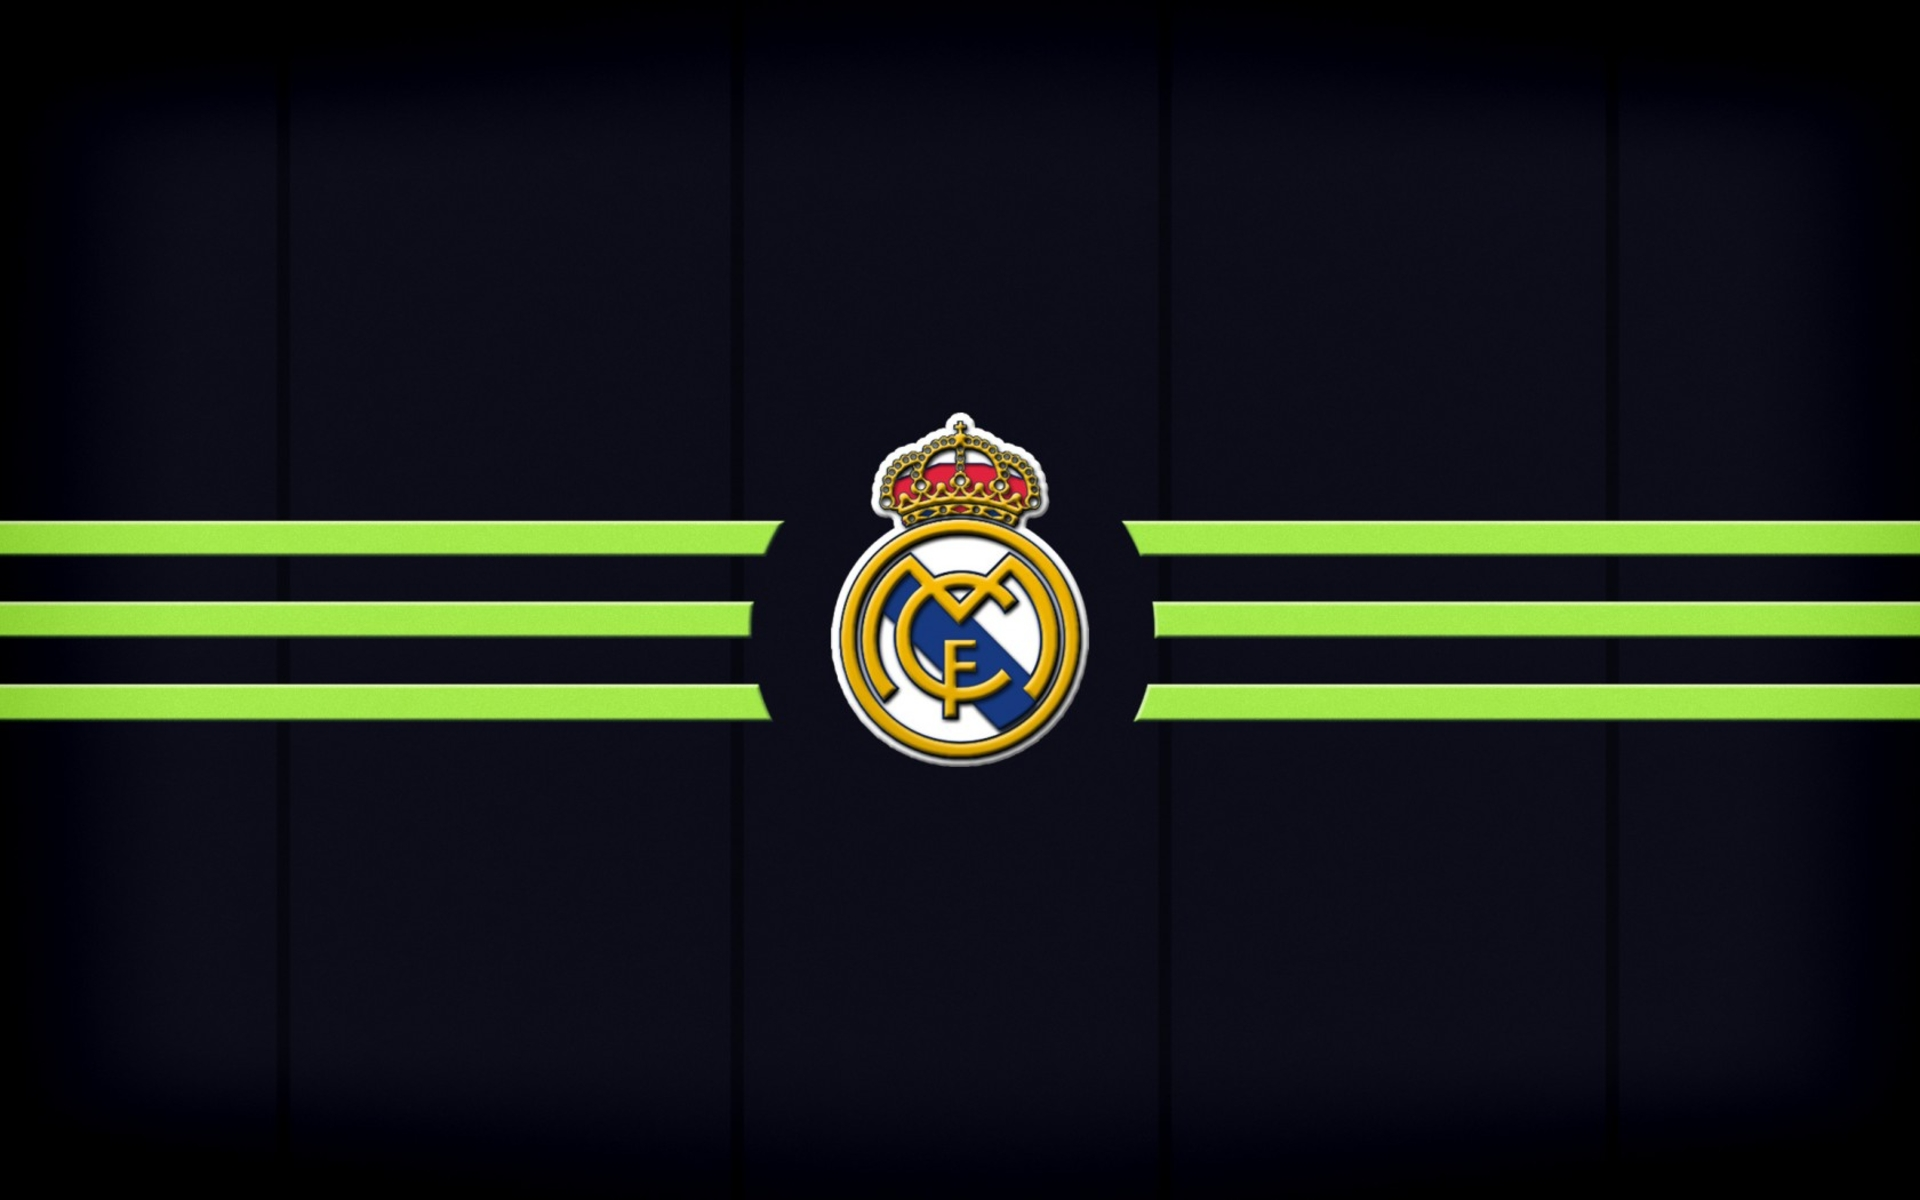 Real Madrid Logo Backgrounds